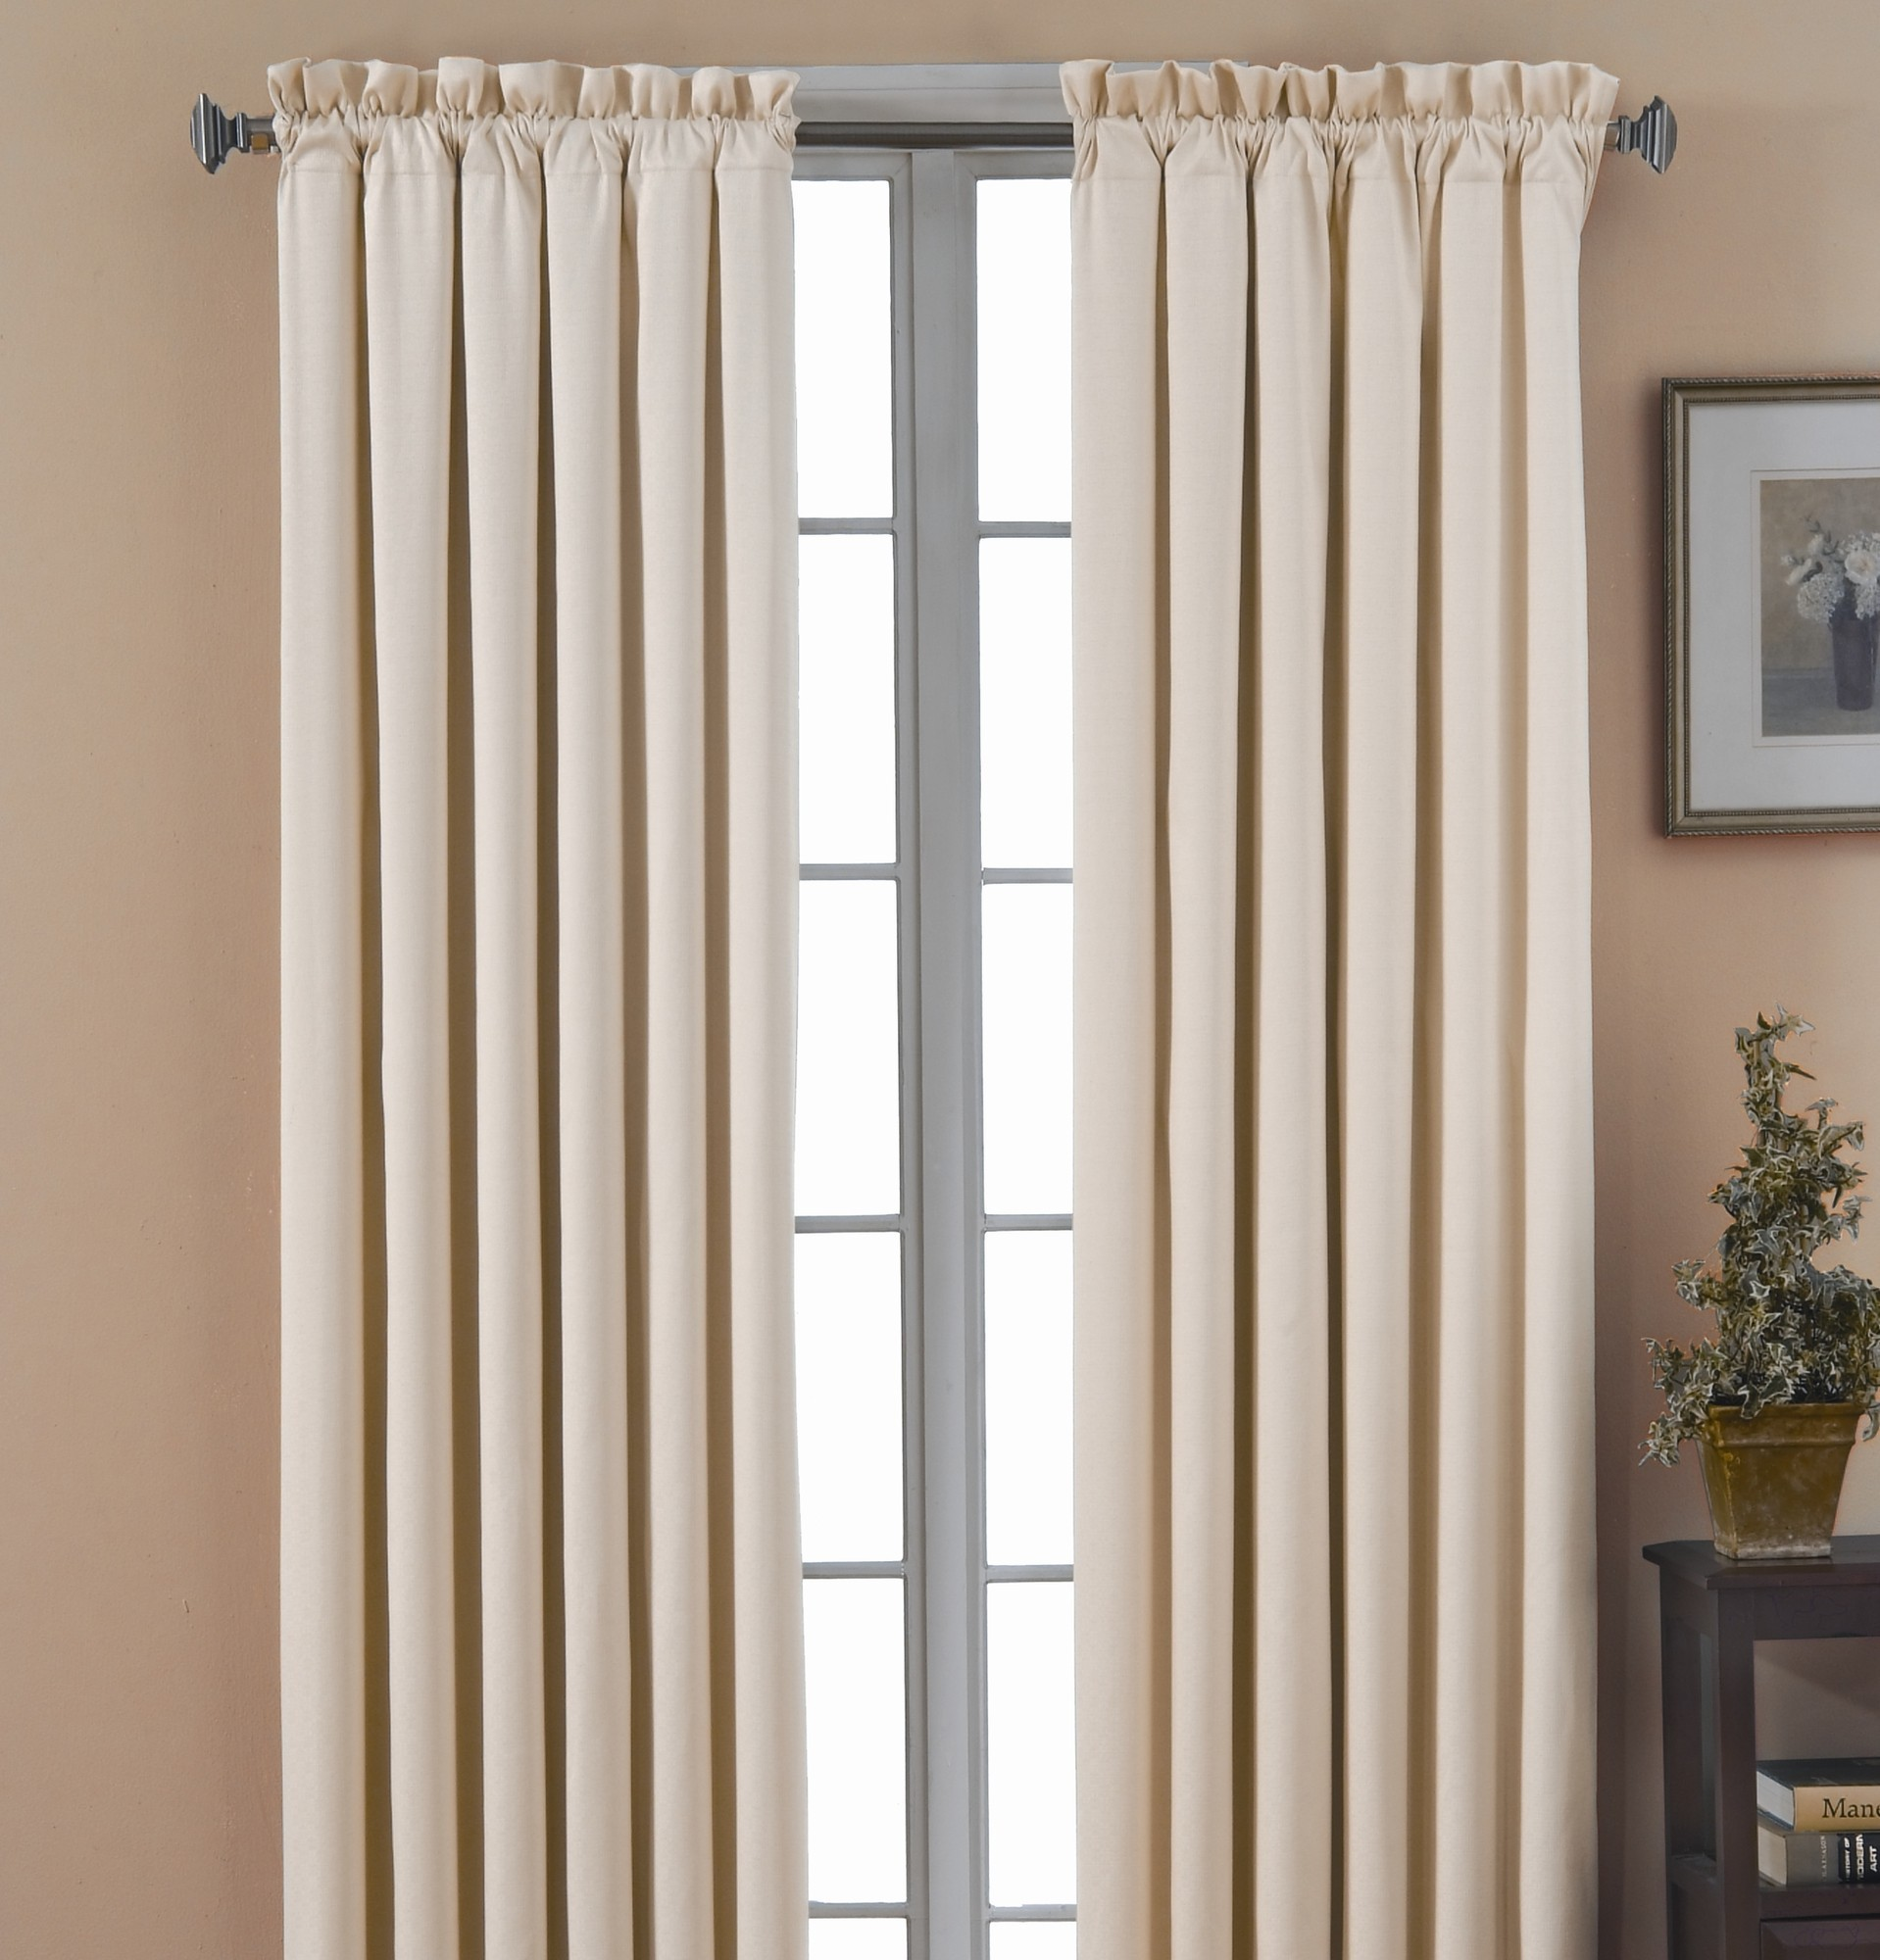 Curtains From Target | Soundproof Curtains Target | Acoustical Curtains